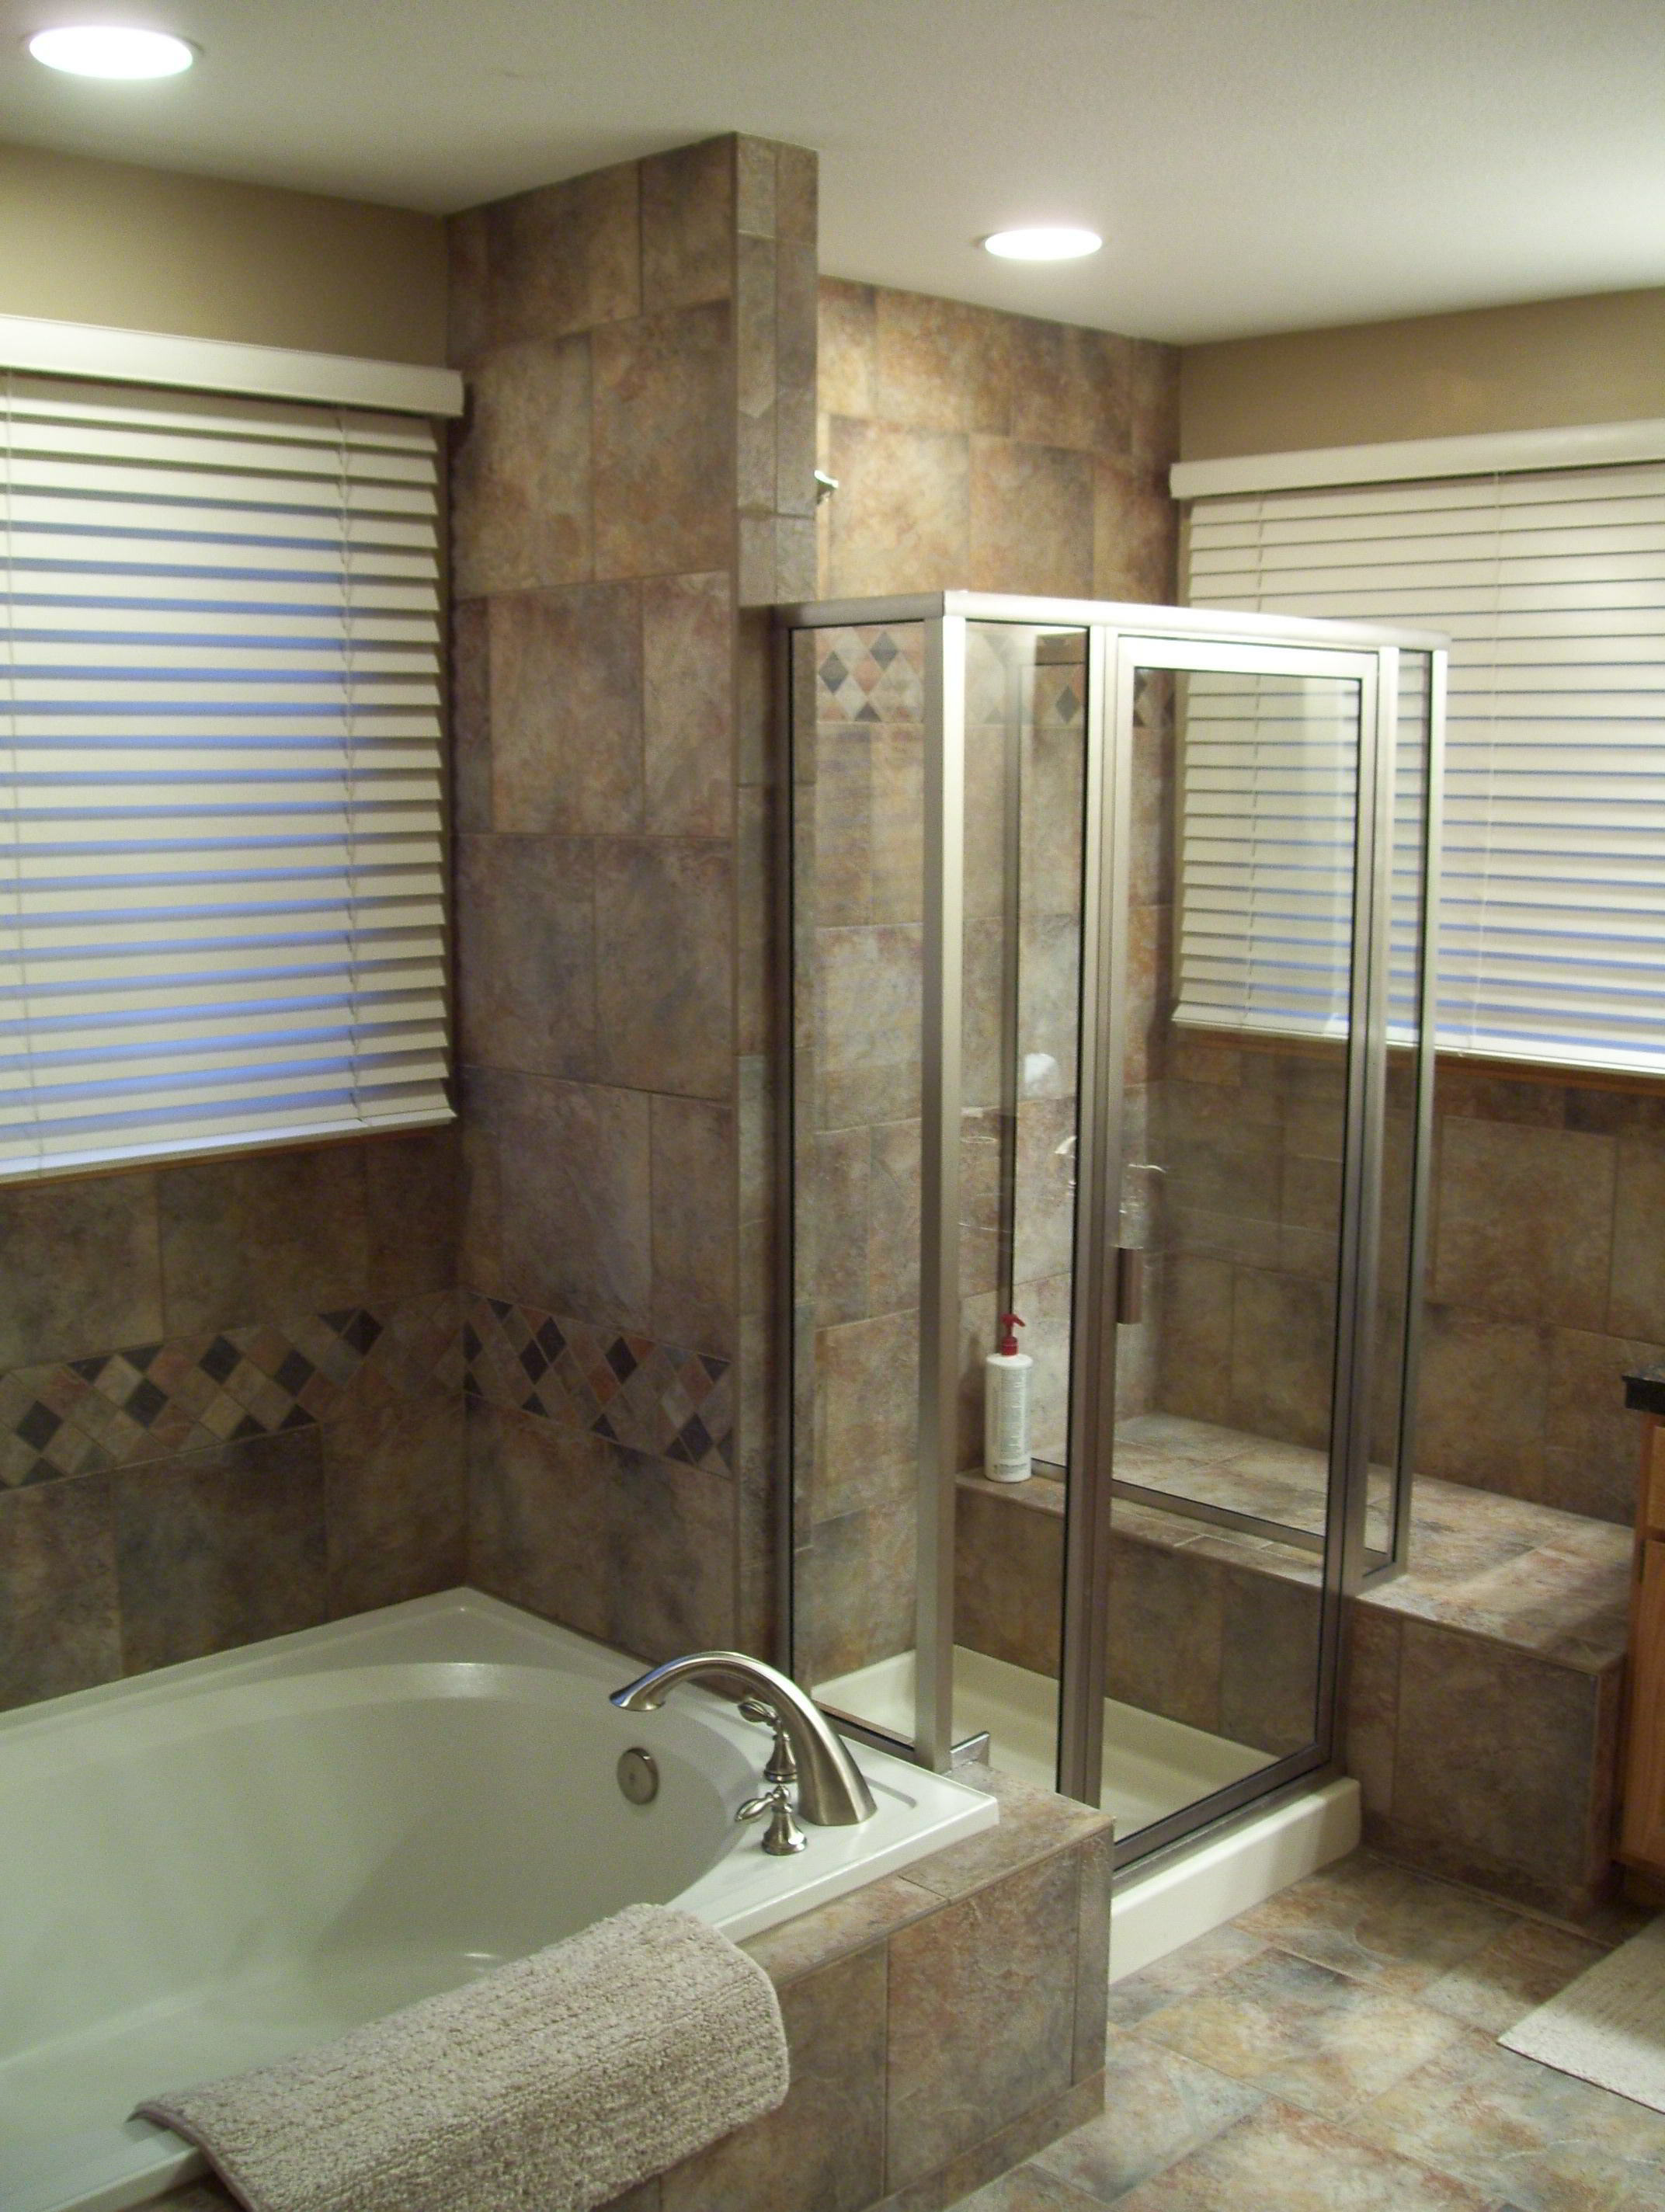 id22 kitchen and bathroom remodeling bathroom remodeling home improvement